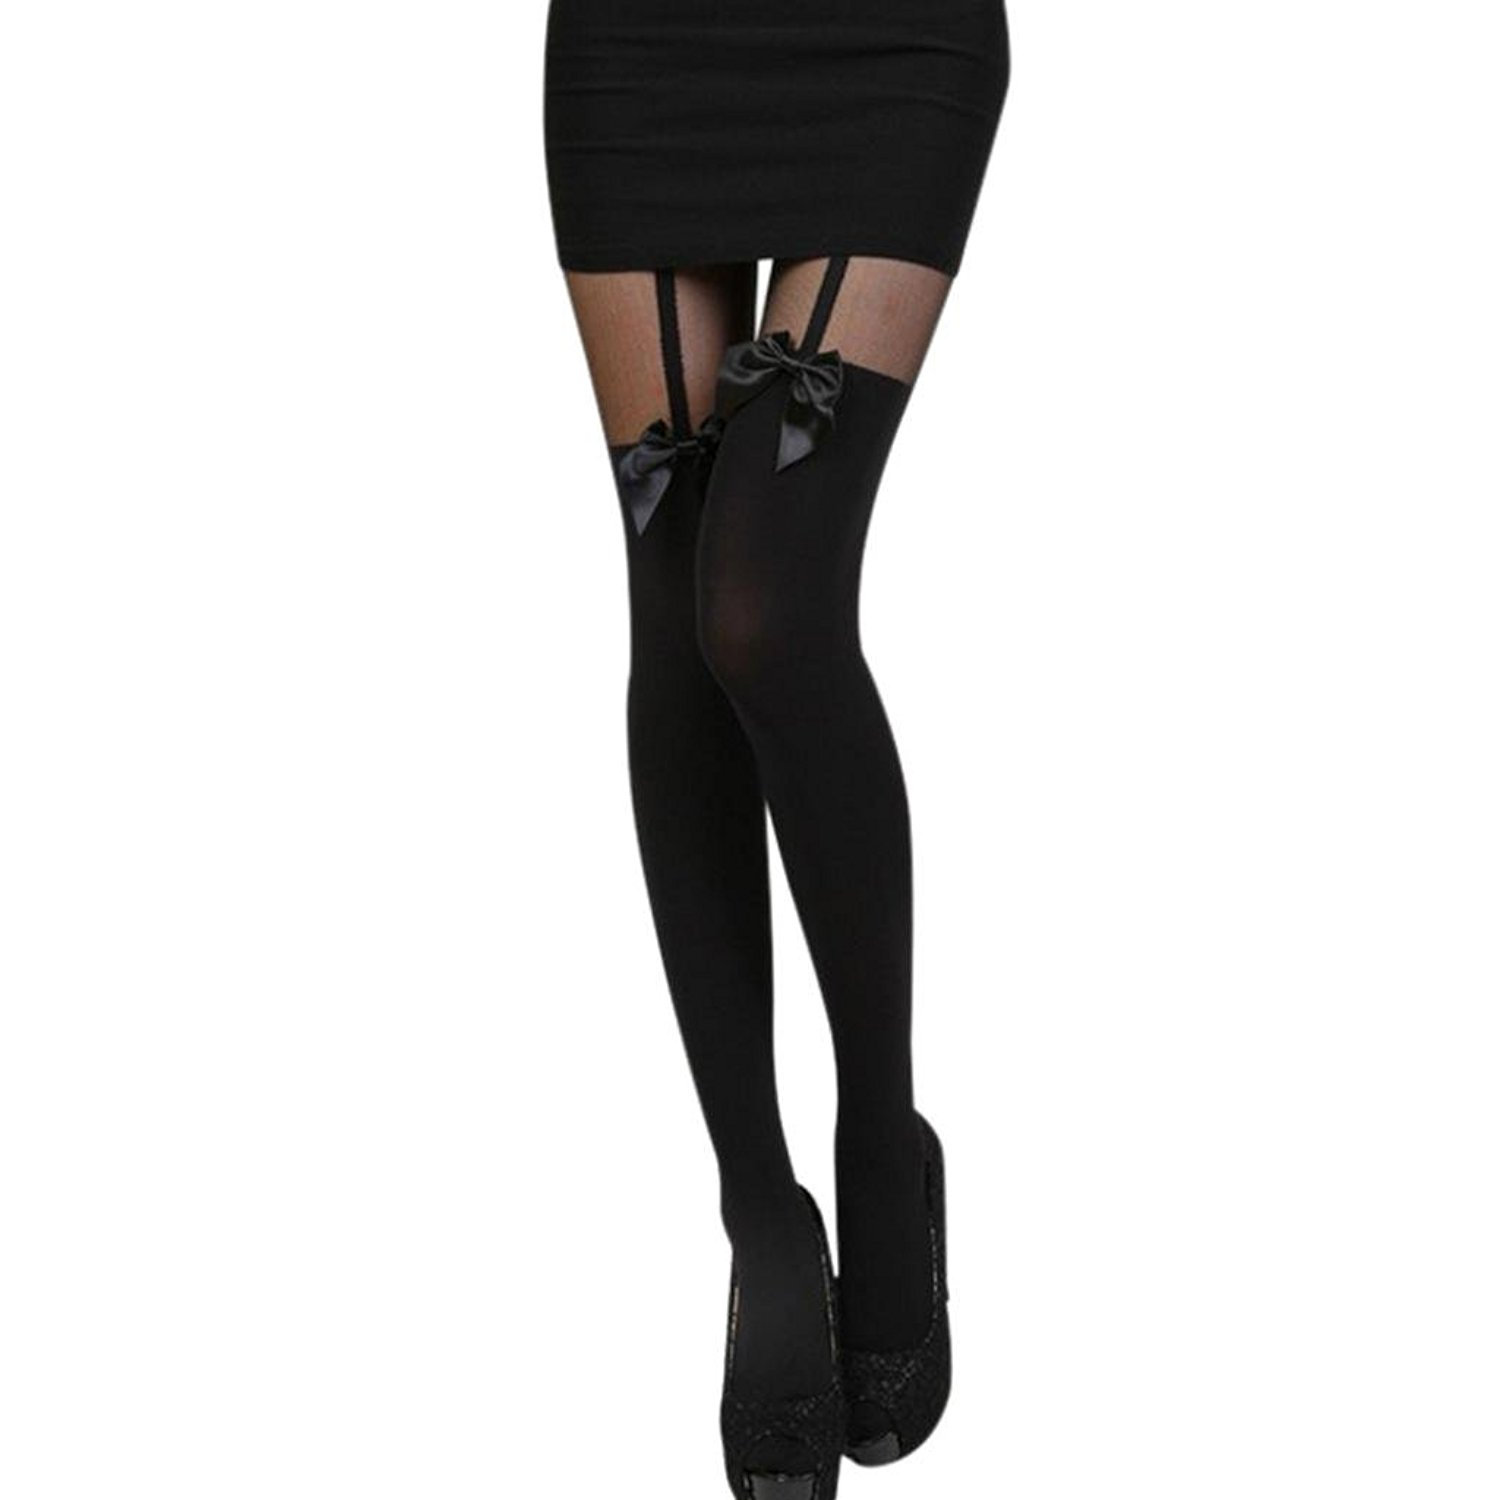 16f2cb276cc Get Quotations · Qisc Vintage Tights Pantyhose